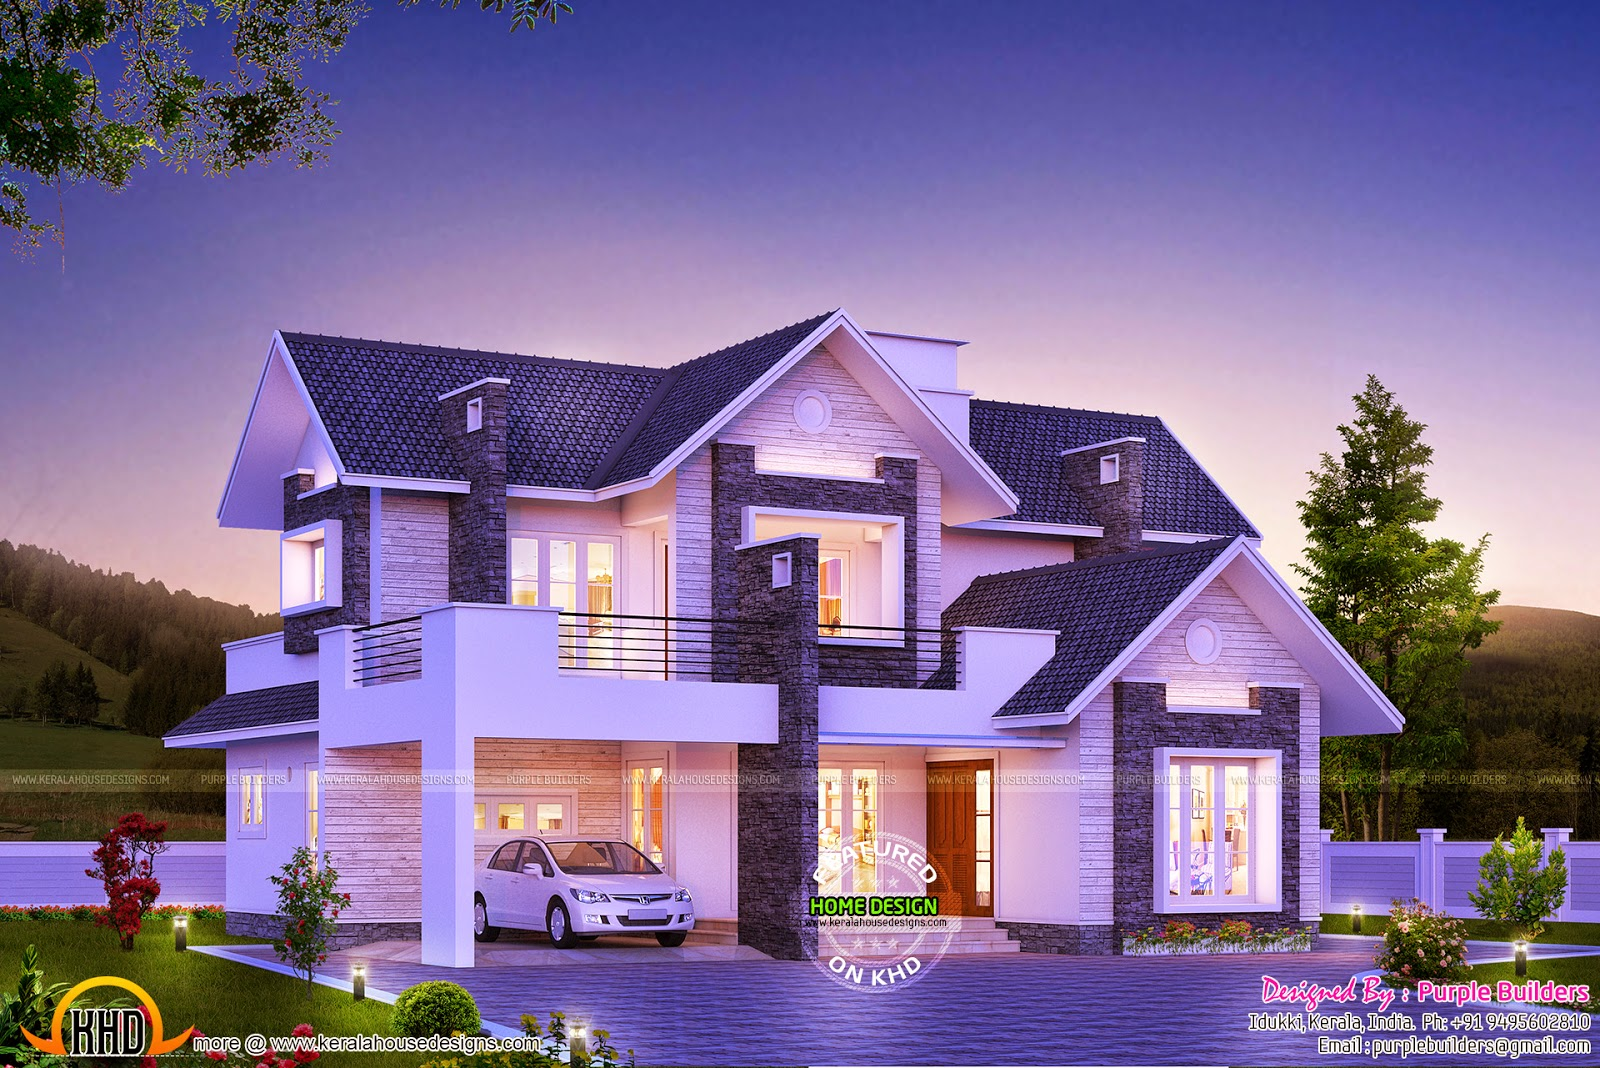 Super dream home kerala home design and floor plans for Design in the house